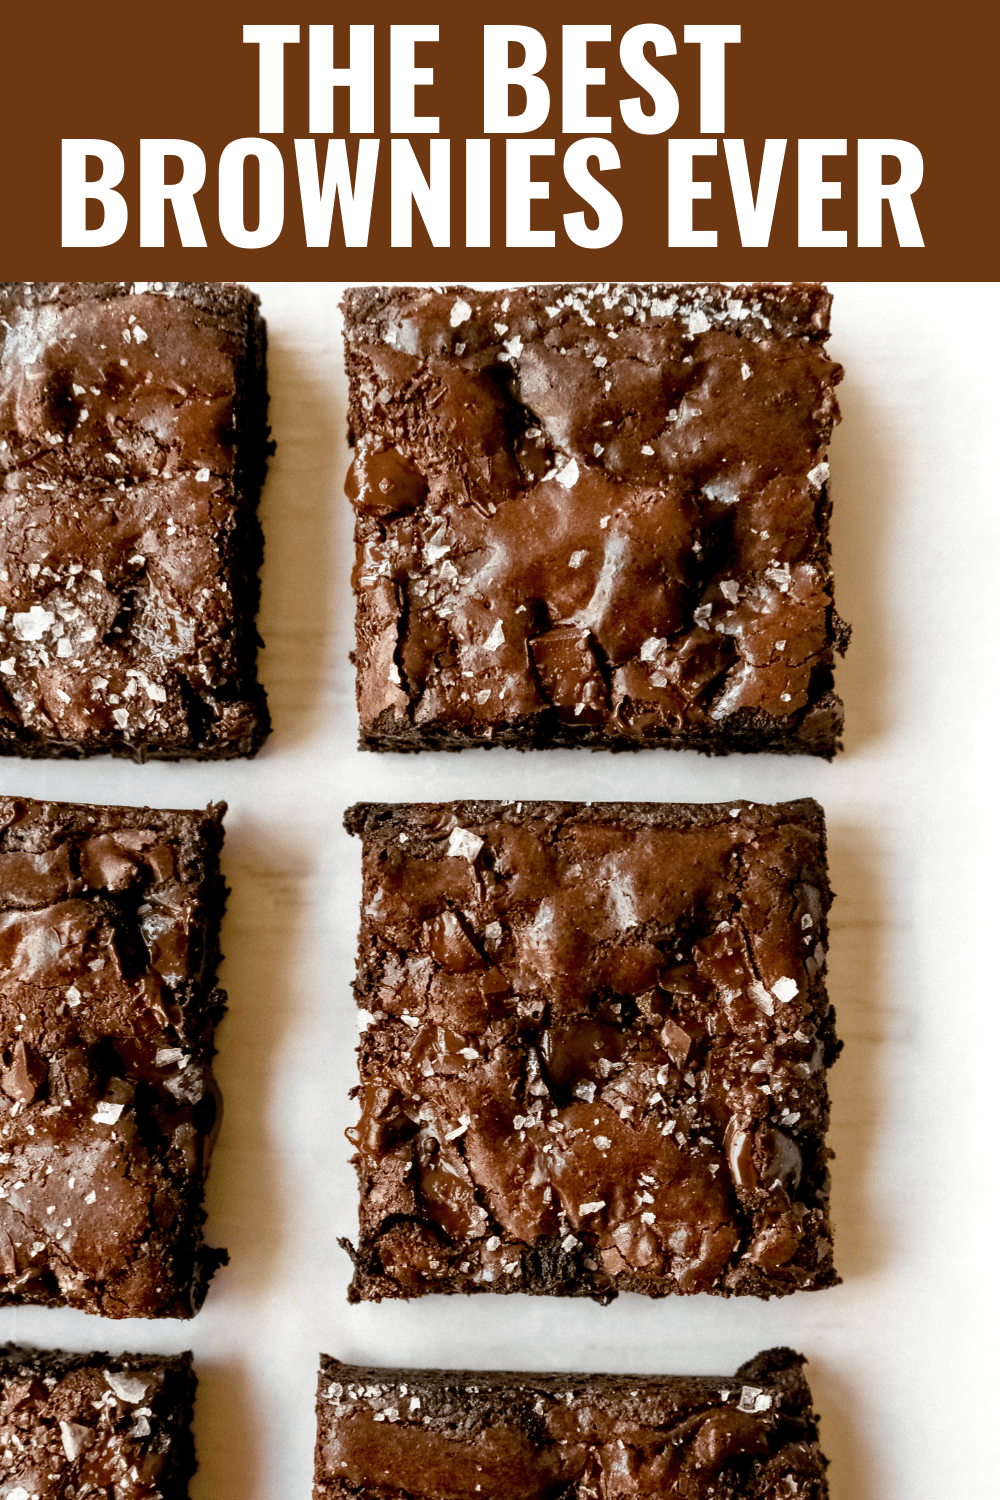 One Bowl Fudgy Chocolate Brownies How to make the easiest and quickest rich, decadent, fudgy, homemade chocolate brownies. These homemade brownies will knock your socks off! www.modernhoney.com #brownie #brownies #chocolate #chocolatebrownies